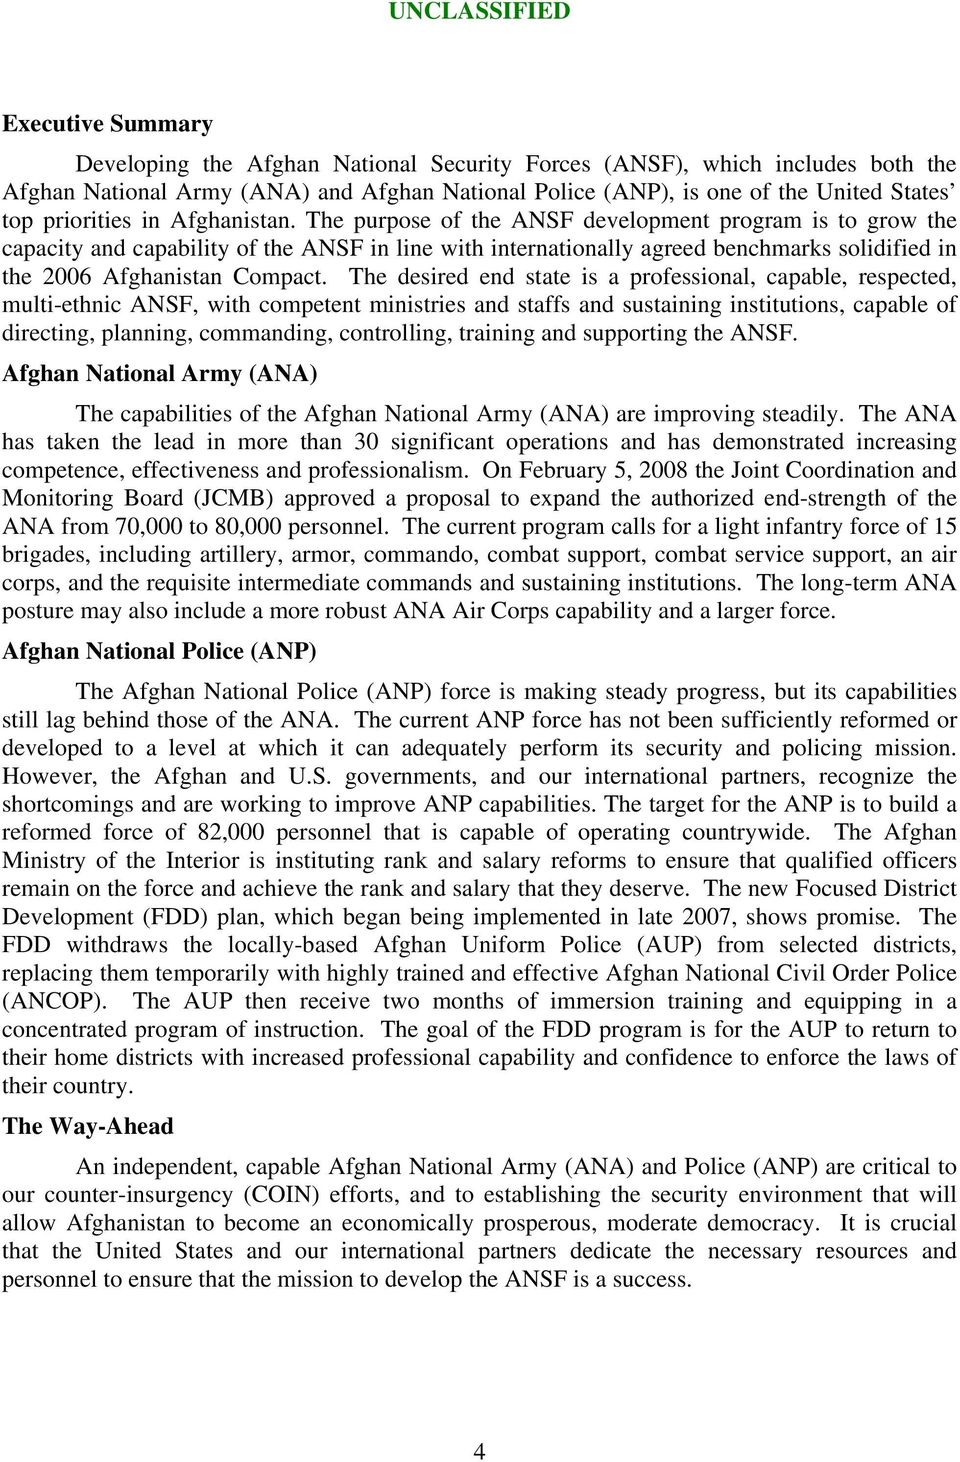 The purpose of the ANSF development program is to grow the capacity and capability of the ANSF in line with internationally agreed benchmarks solidified in the 2006 Afghanistan Compact.